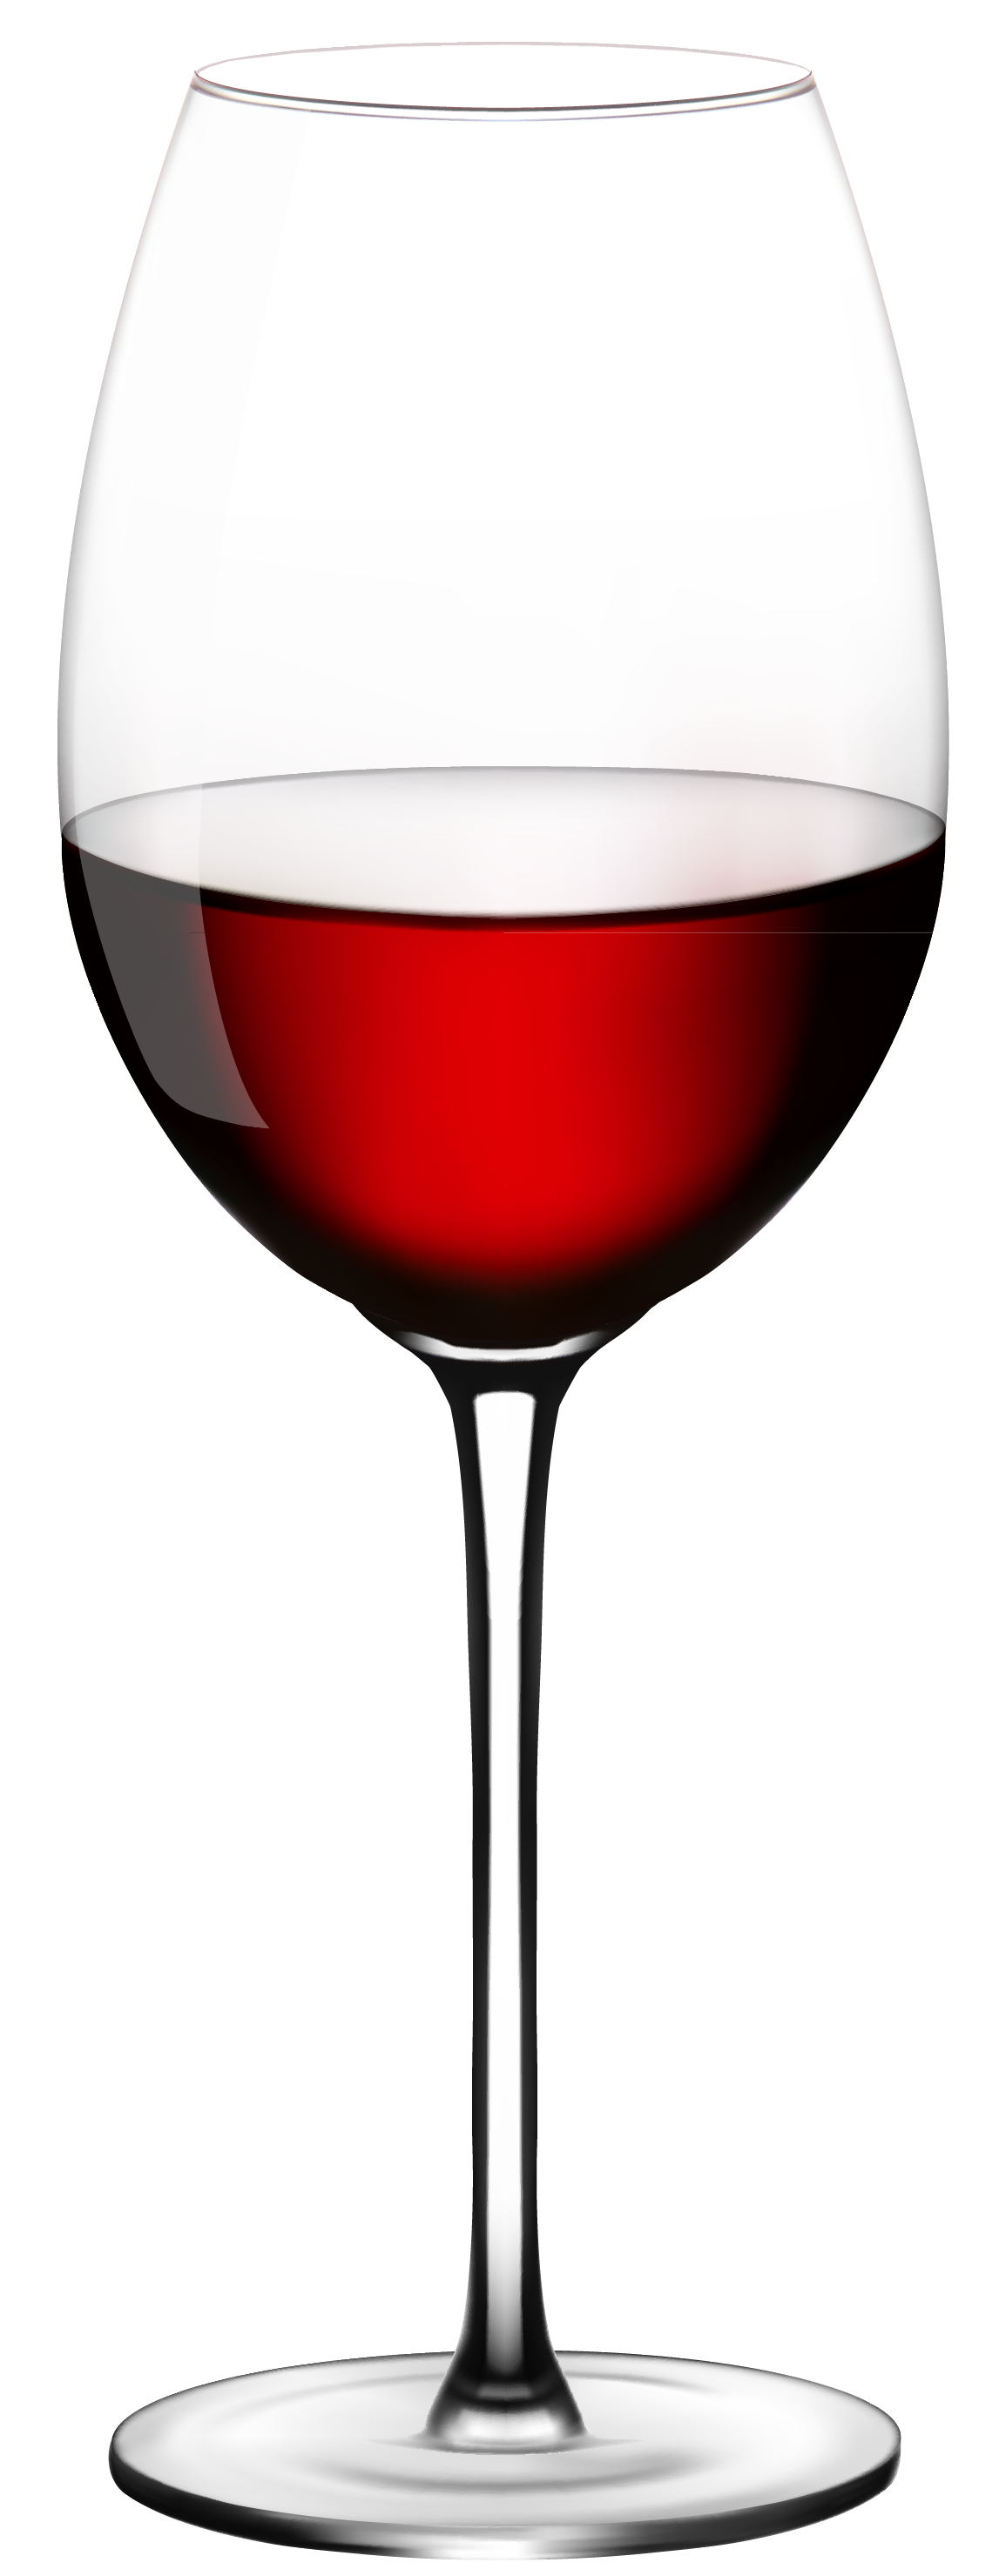 Wine Glass Png Image image #31791 - PNG Glass Of Wine